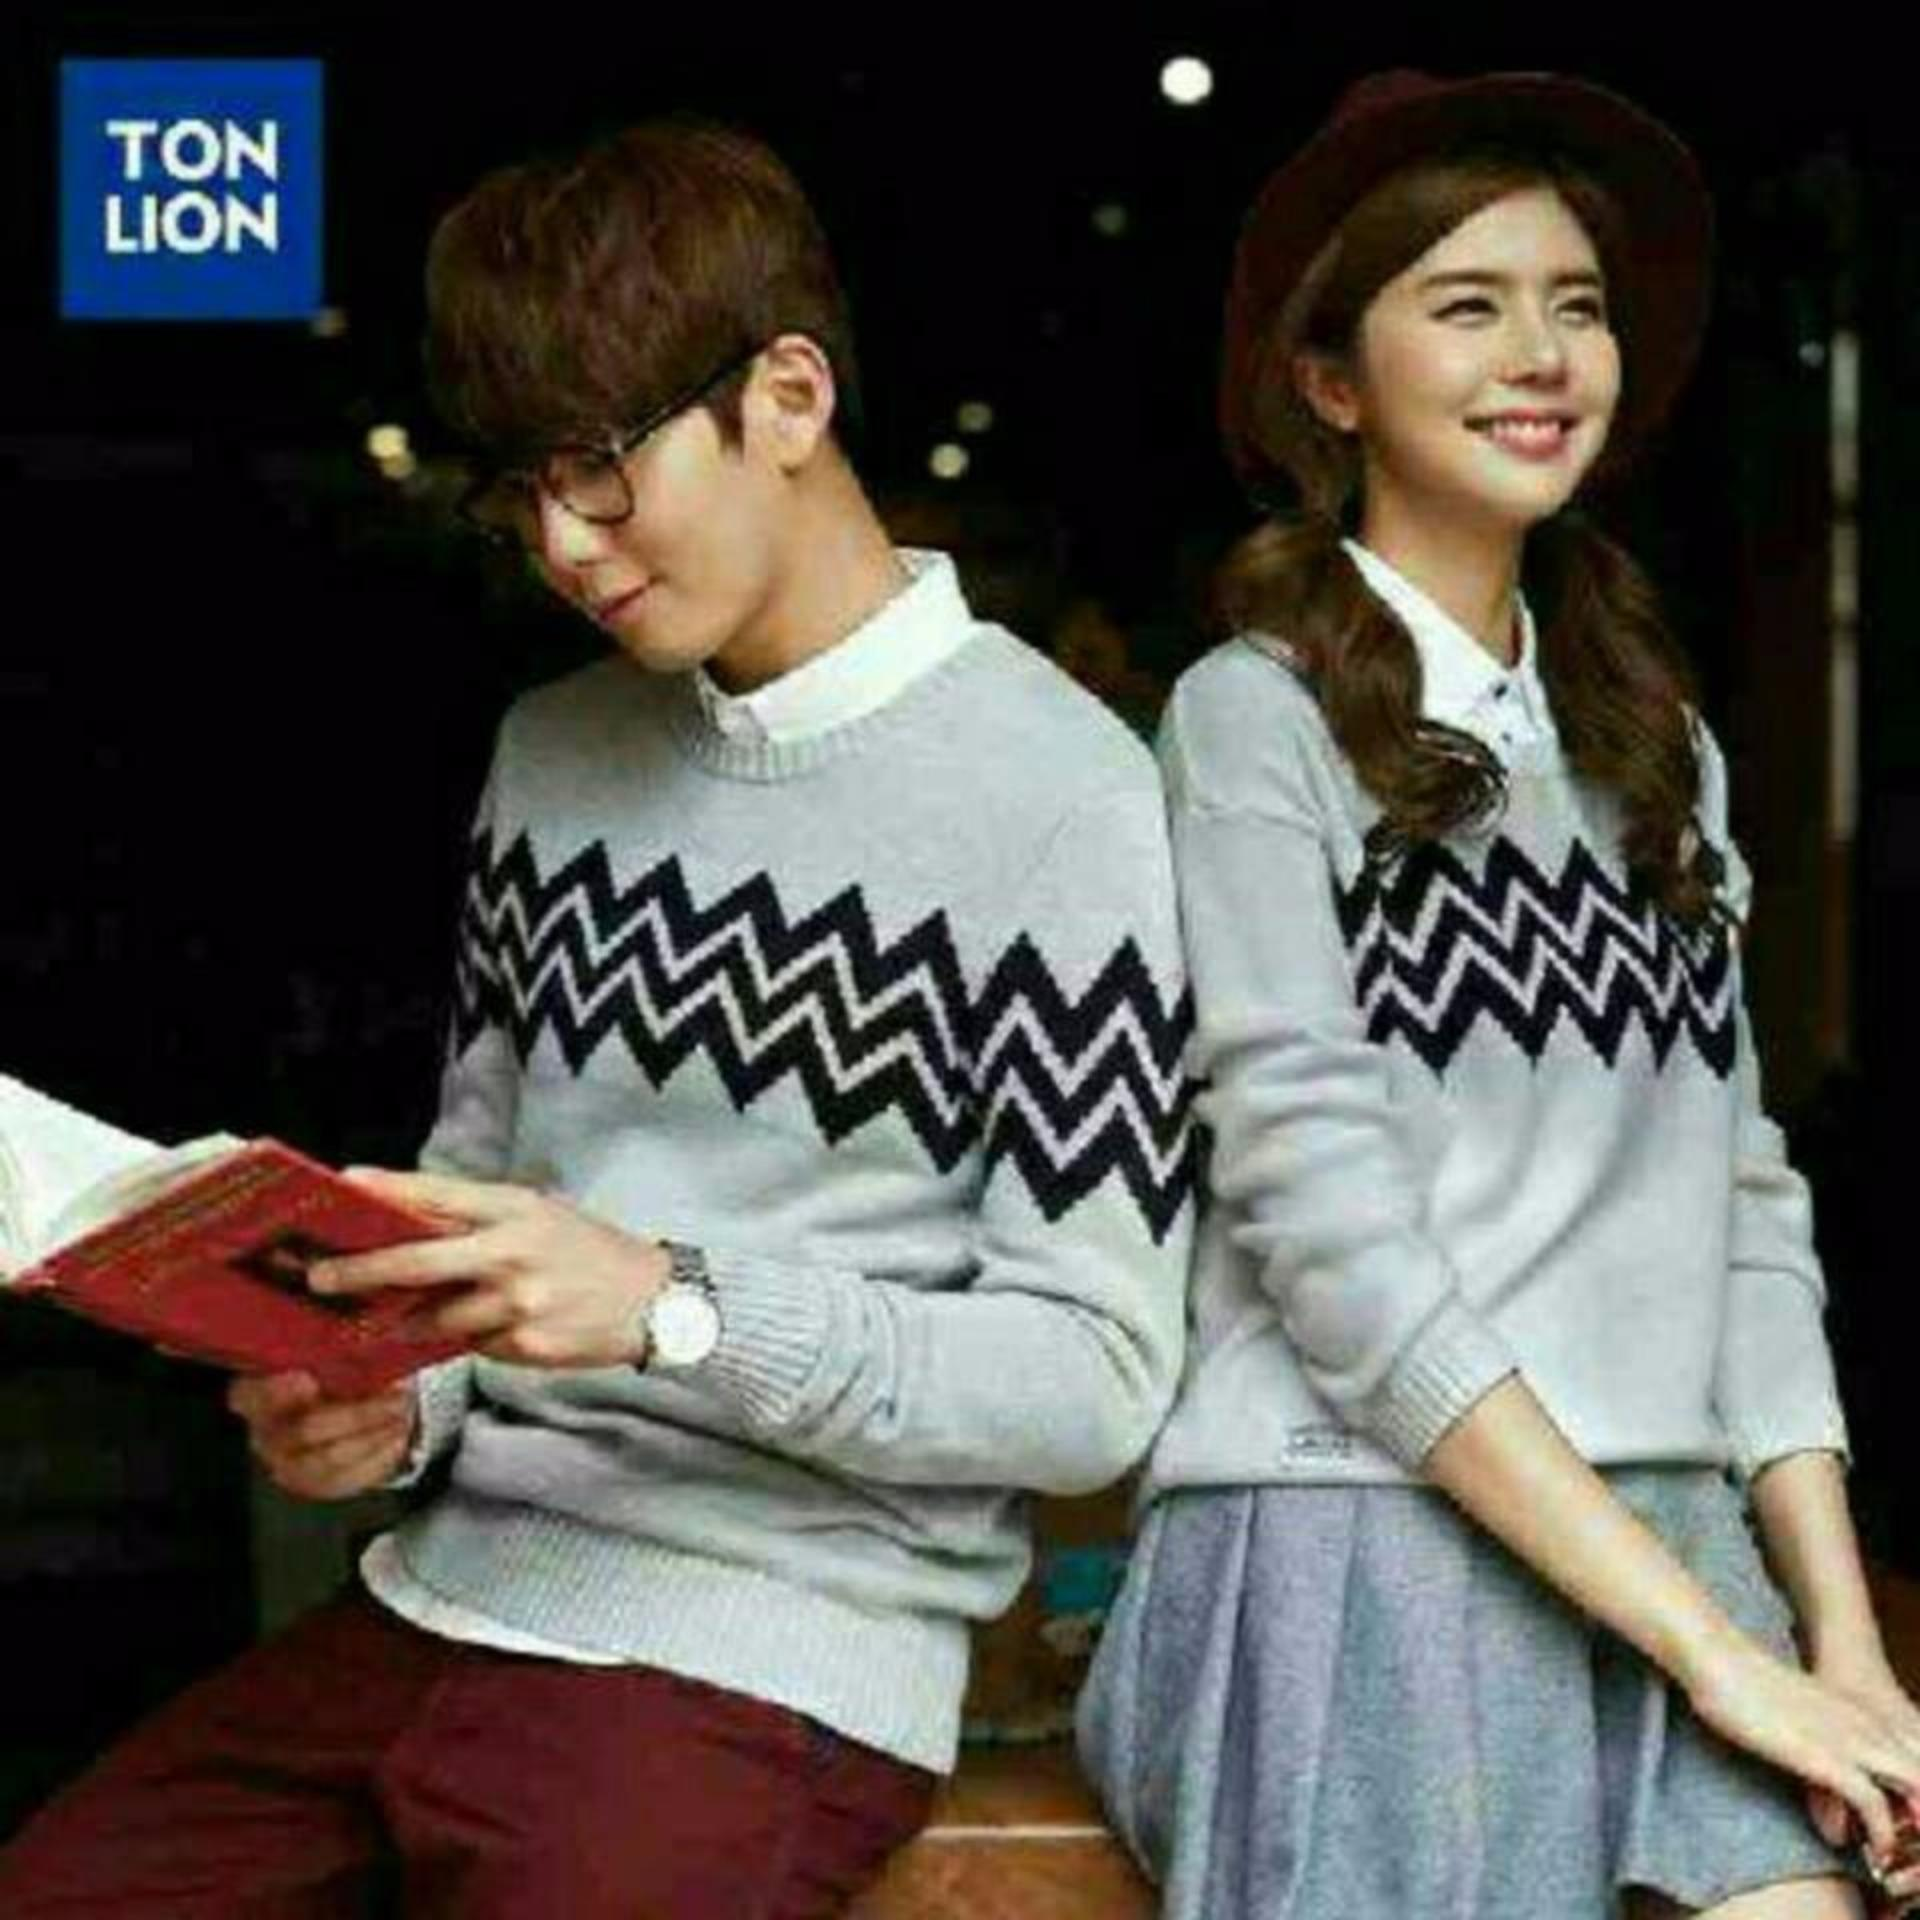 Spesifikasi Couplelover Sweater Pasangan Couple Zig Zag Abu Terbaru